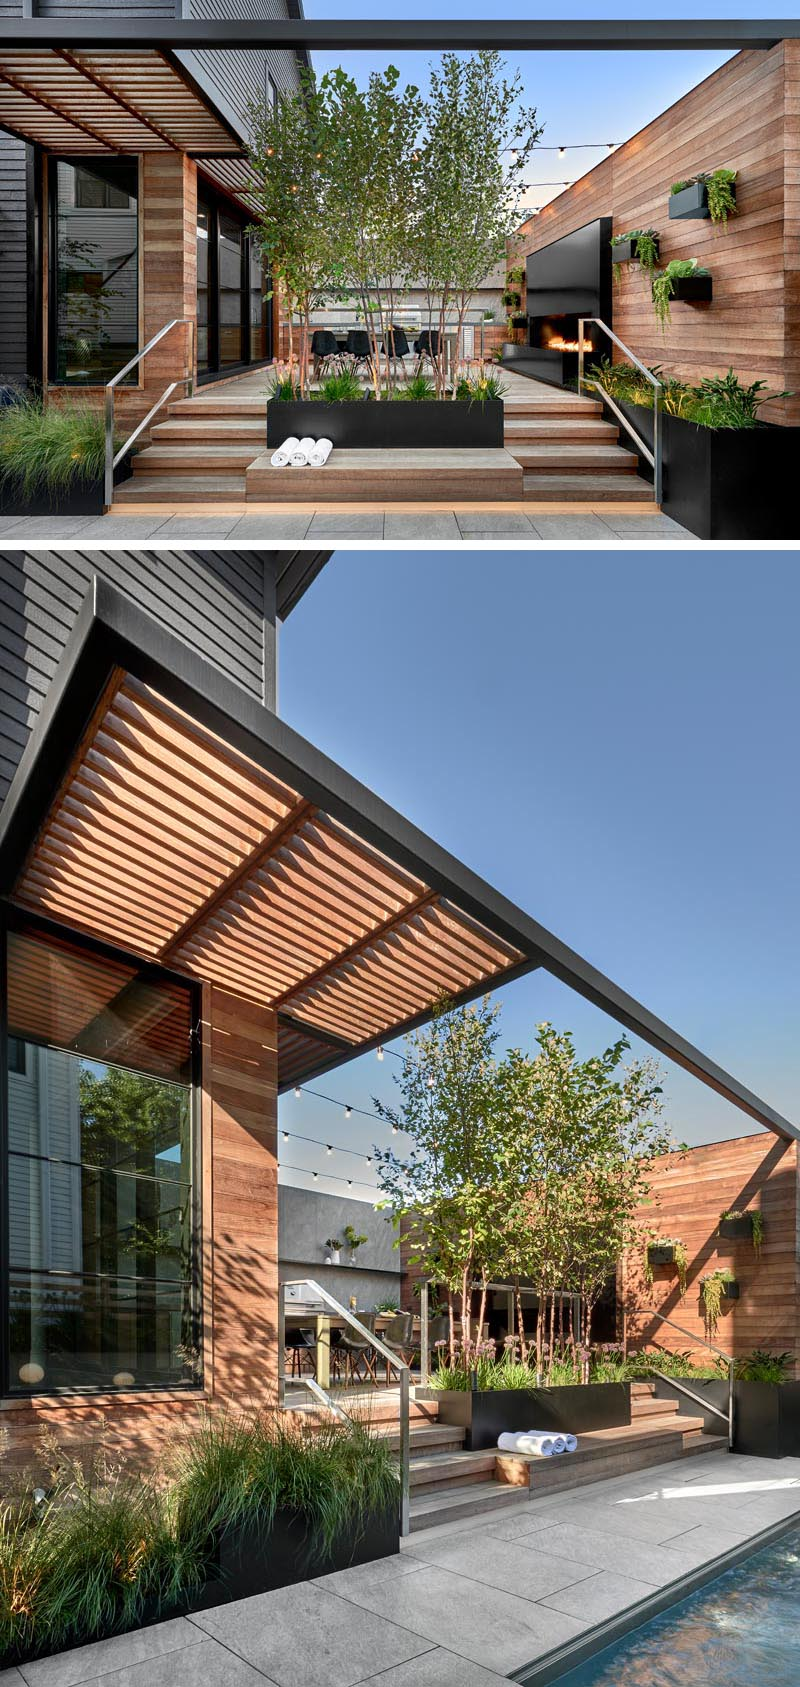 This modern outdoor entertaining space has black steel planters, and louvered sun shades and a pergola that were designed to filter sunlight, add interest, and maintain privacy. Lighting has been integrated under stairs, handrails, and above the outdoor kitchen for safety and aesthetics. #ModernOutdoorSpace #Landscaping #BlackSteelPlanters #OutdoorStairs #Pergola #Sunshade